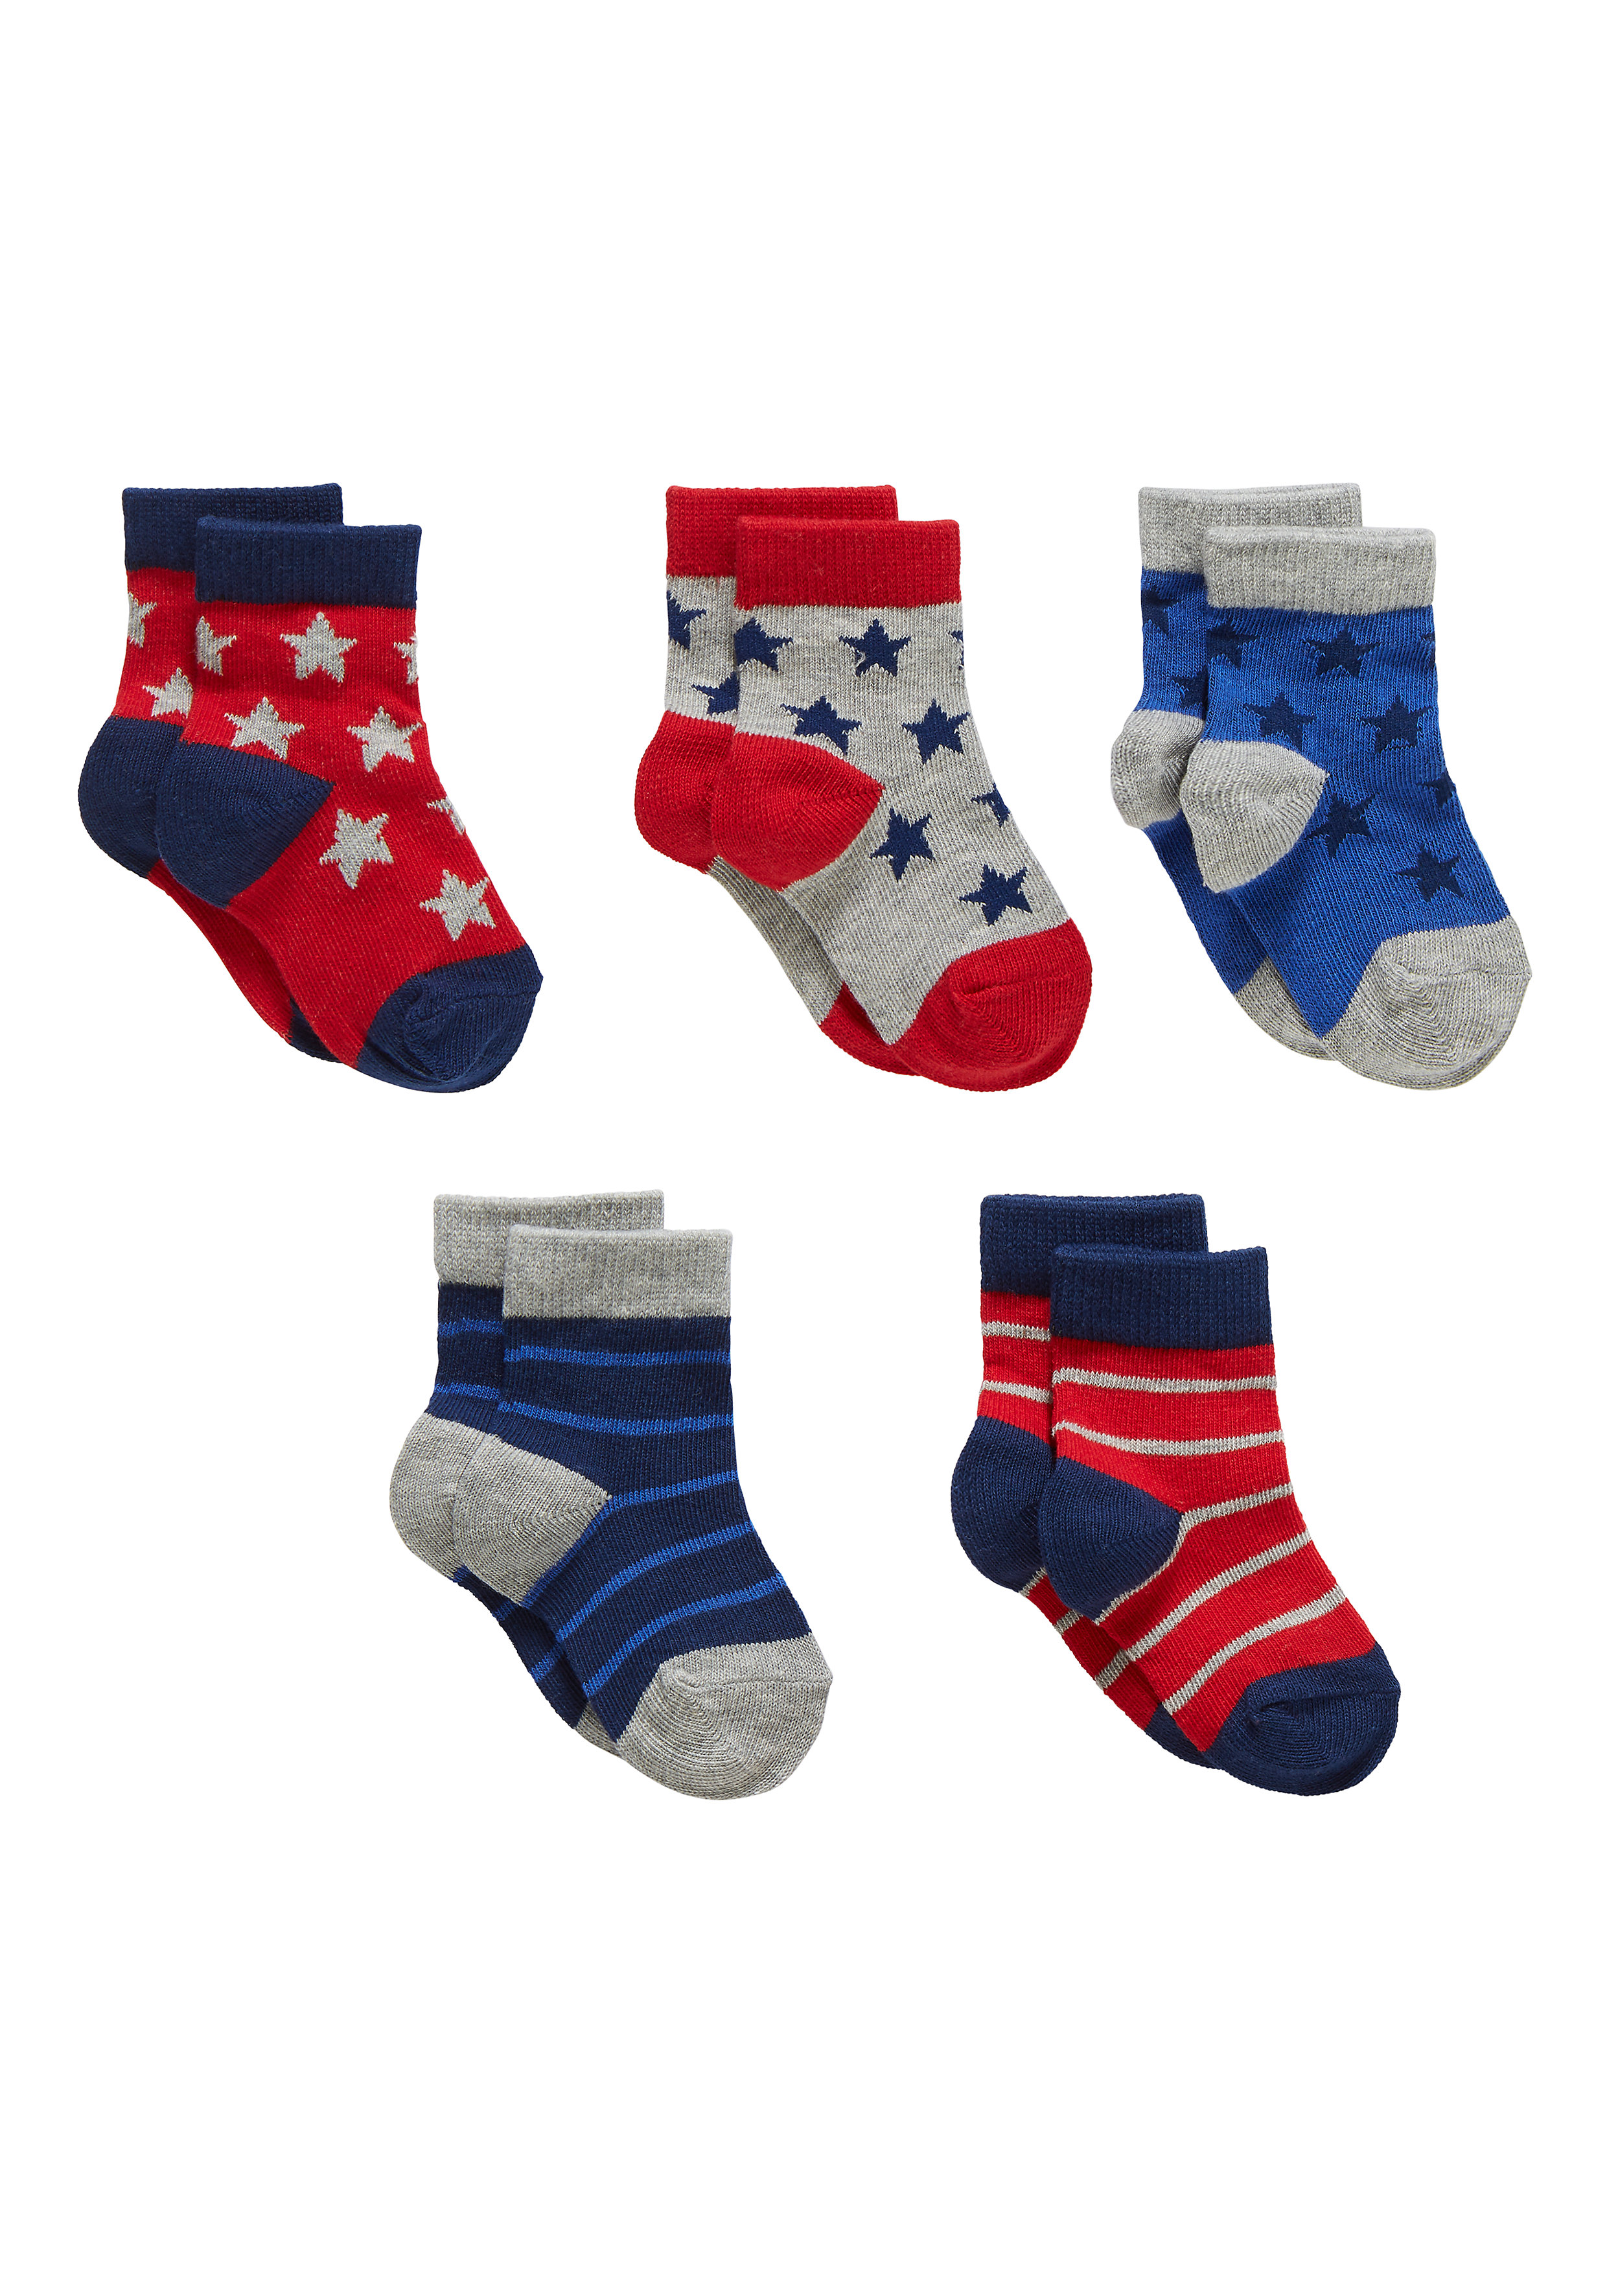 Mothercare   Boys Socks Star And Stripe Design - Pack Of 5 - Multicolor